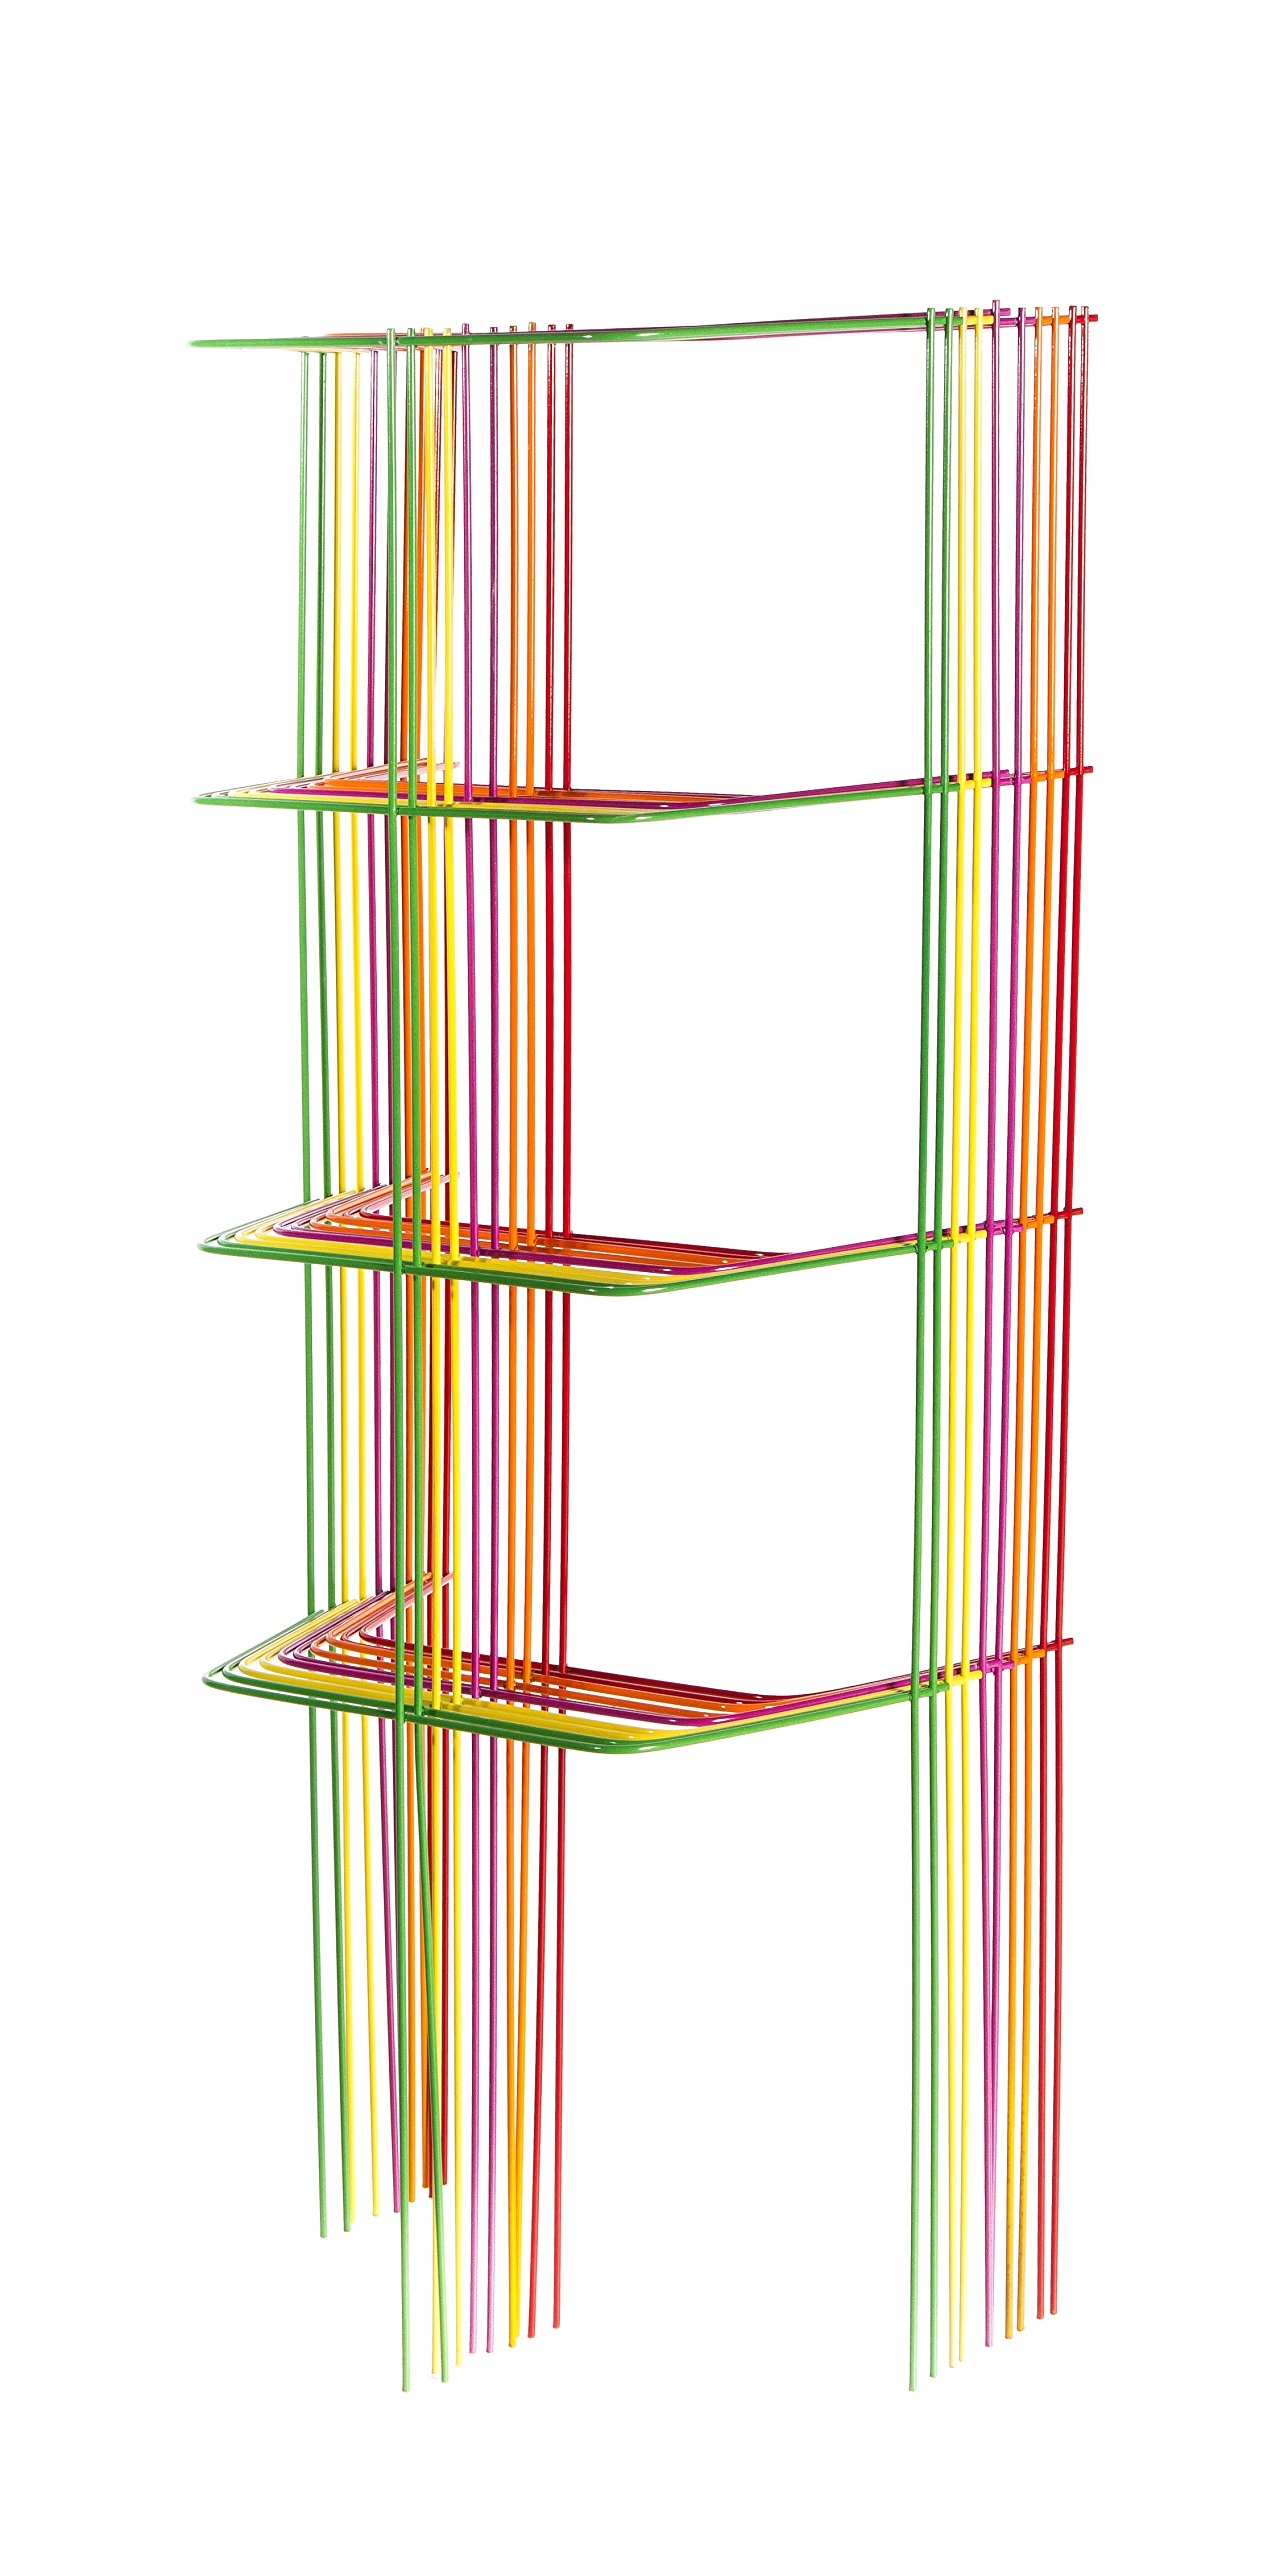 Glamos Heavy Duty Sectional Cage Bright Color Combo Box, 46-Inch, Assorted, 10-Pack